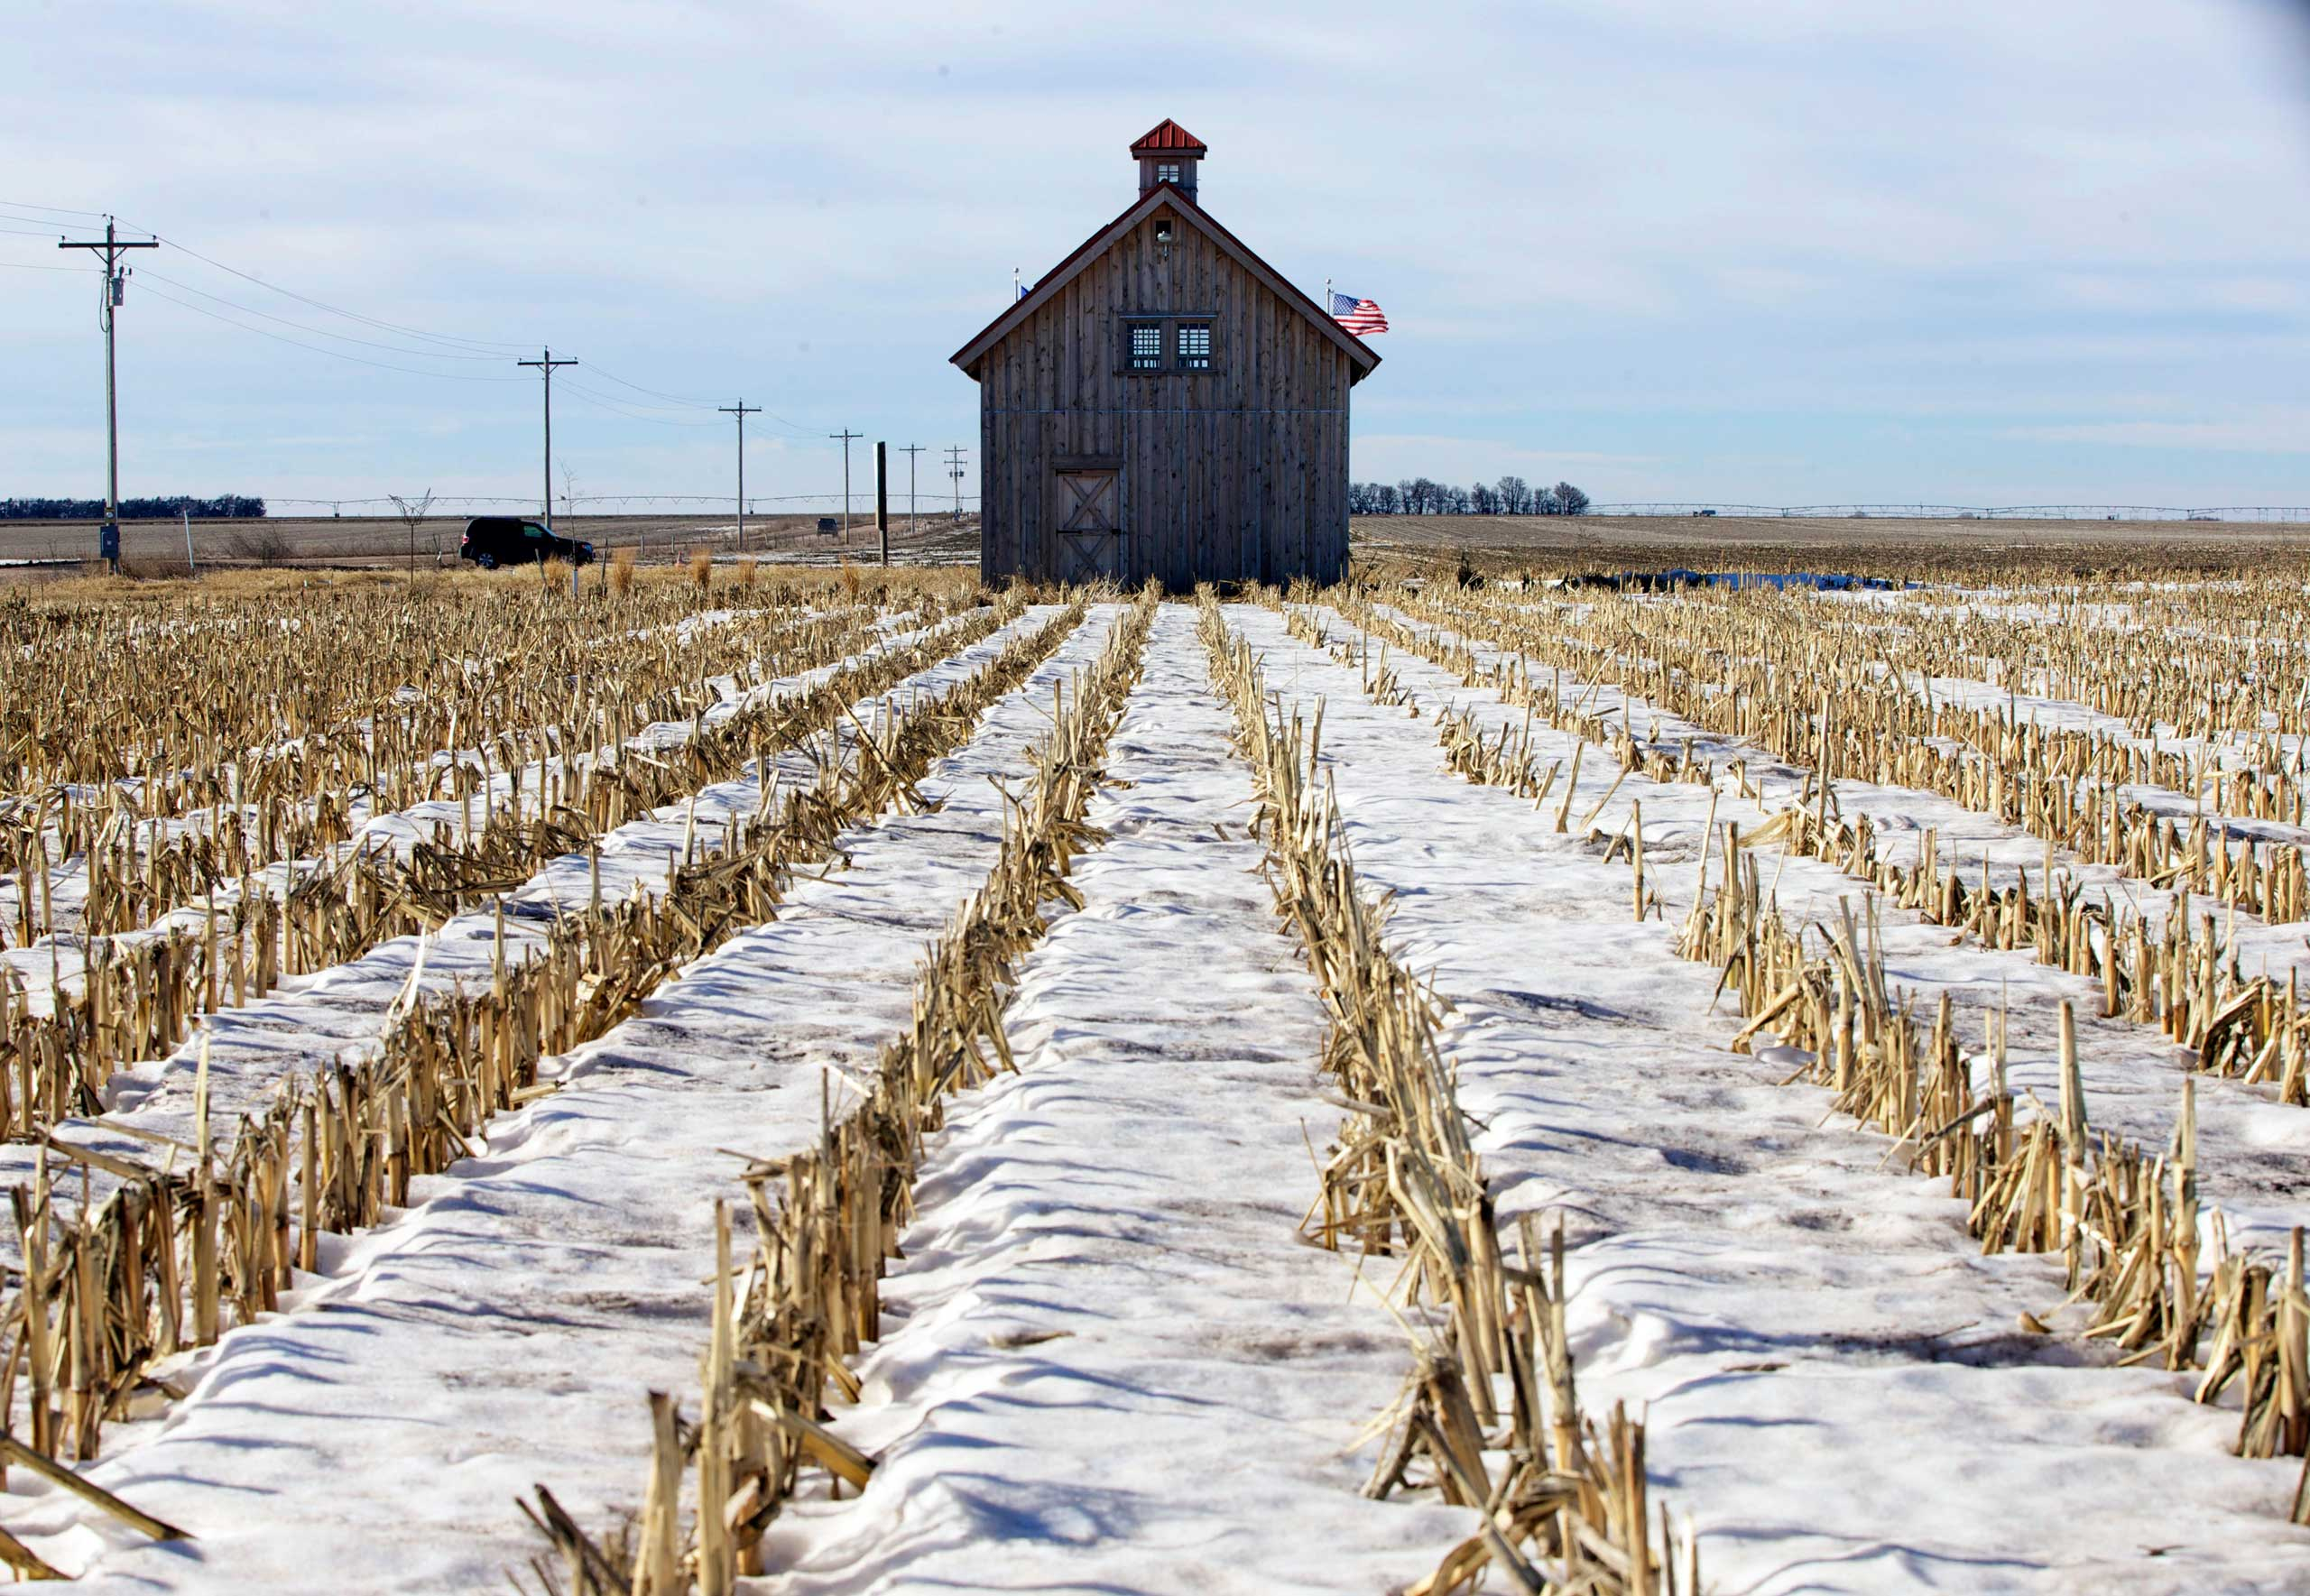 A barn called the Energy Barn, which was built by anti-pipeline activists directly on the route of the Keystone XL pipeline, stands in a snowy corn field near Bradshaw, Neb., Jan. 16, 2015.